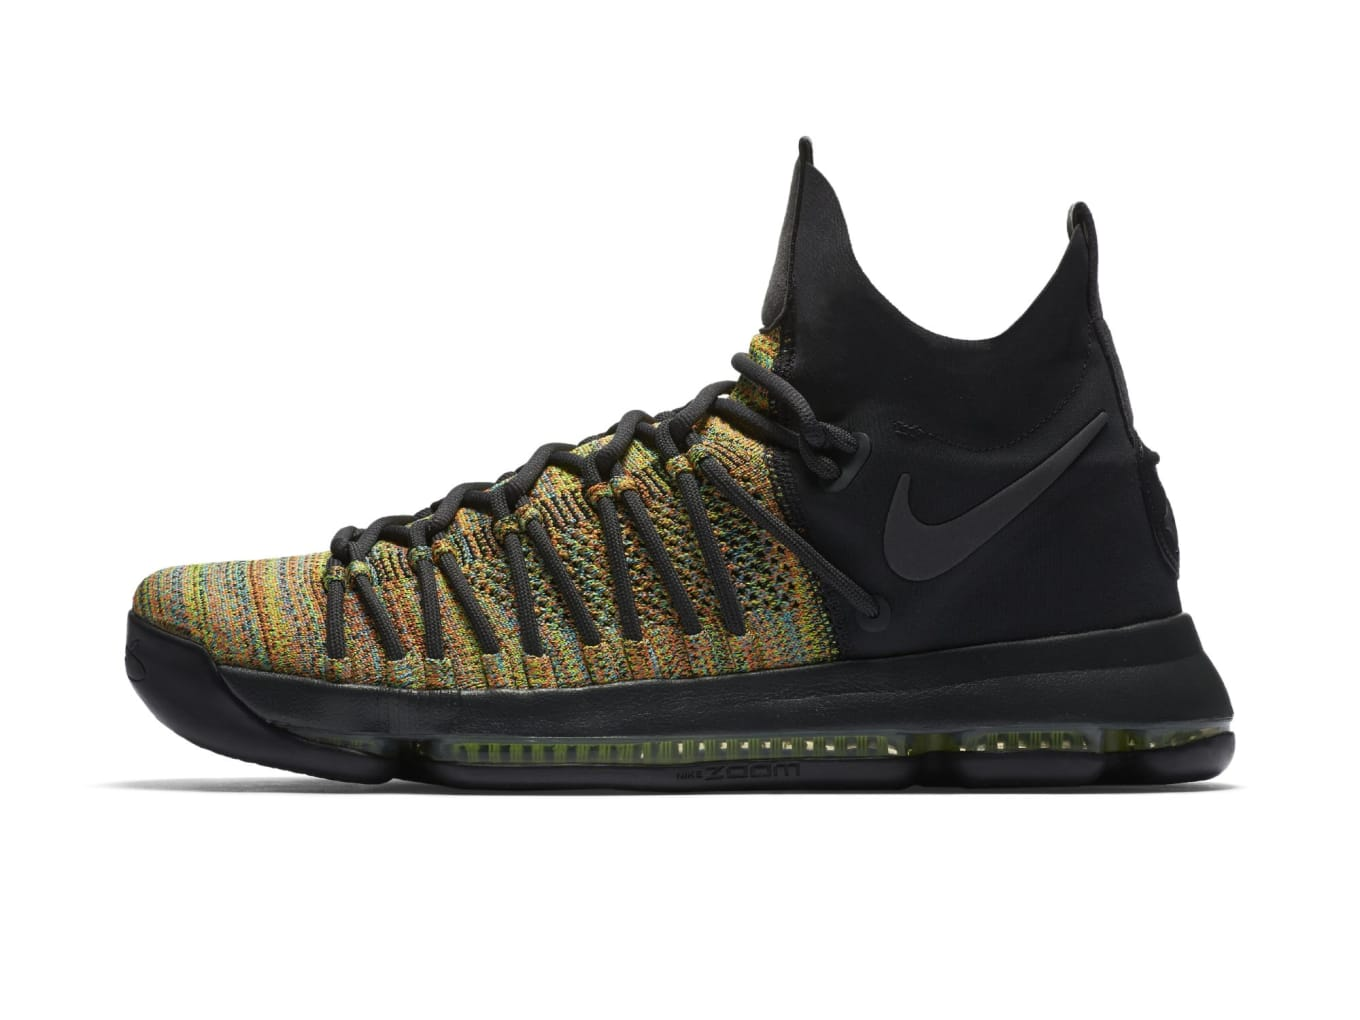 476f3be51eb0 Nike Zoom KD 9 Elite